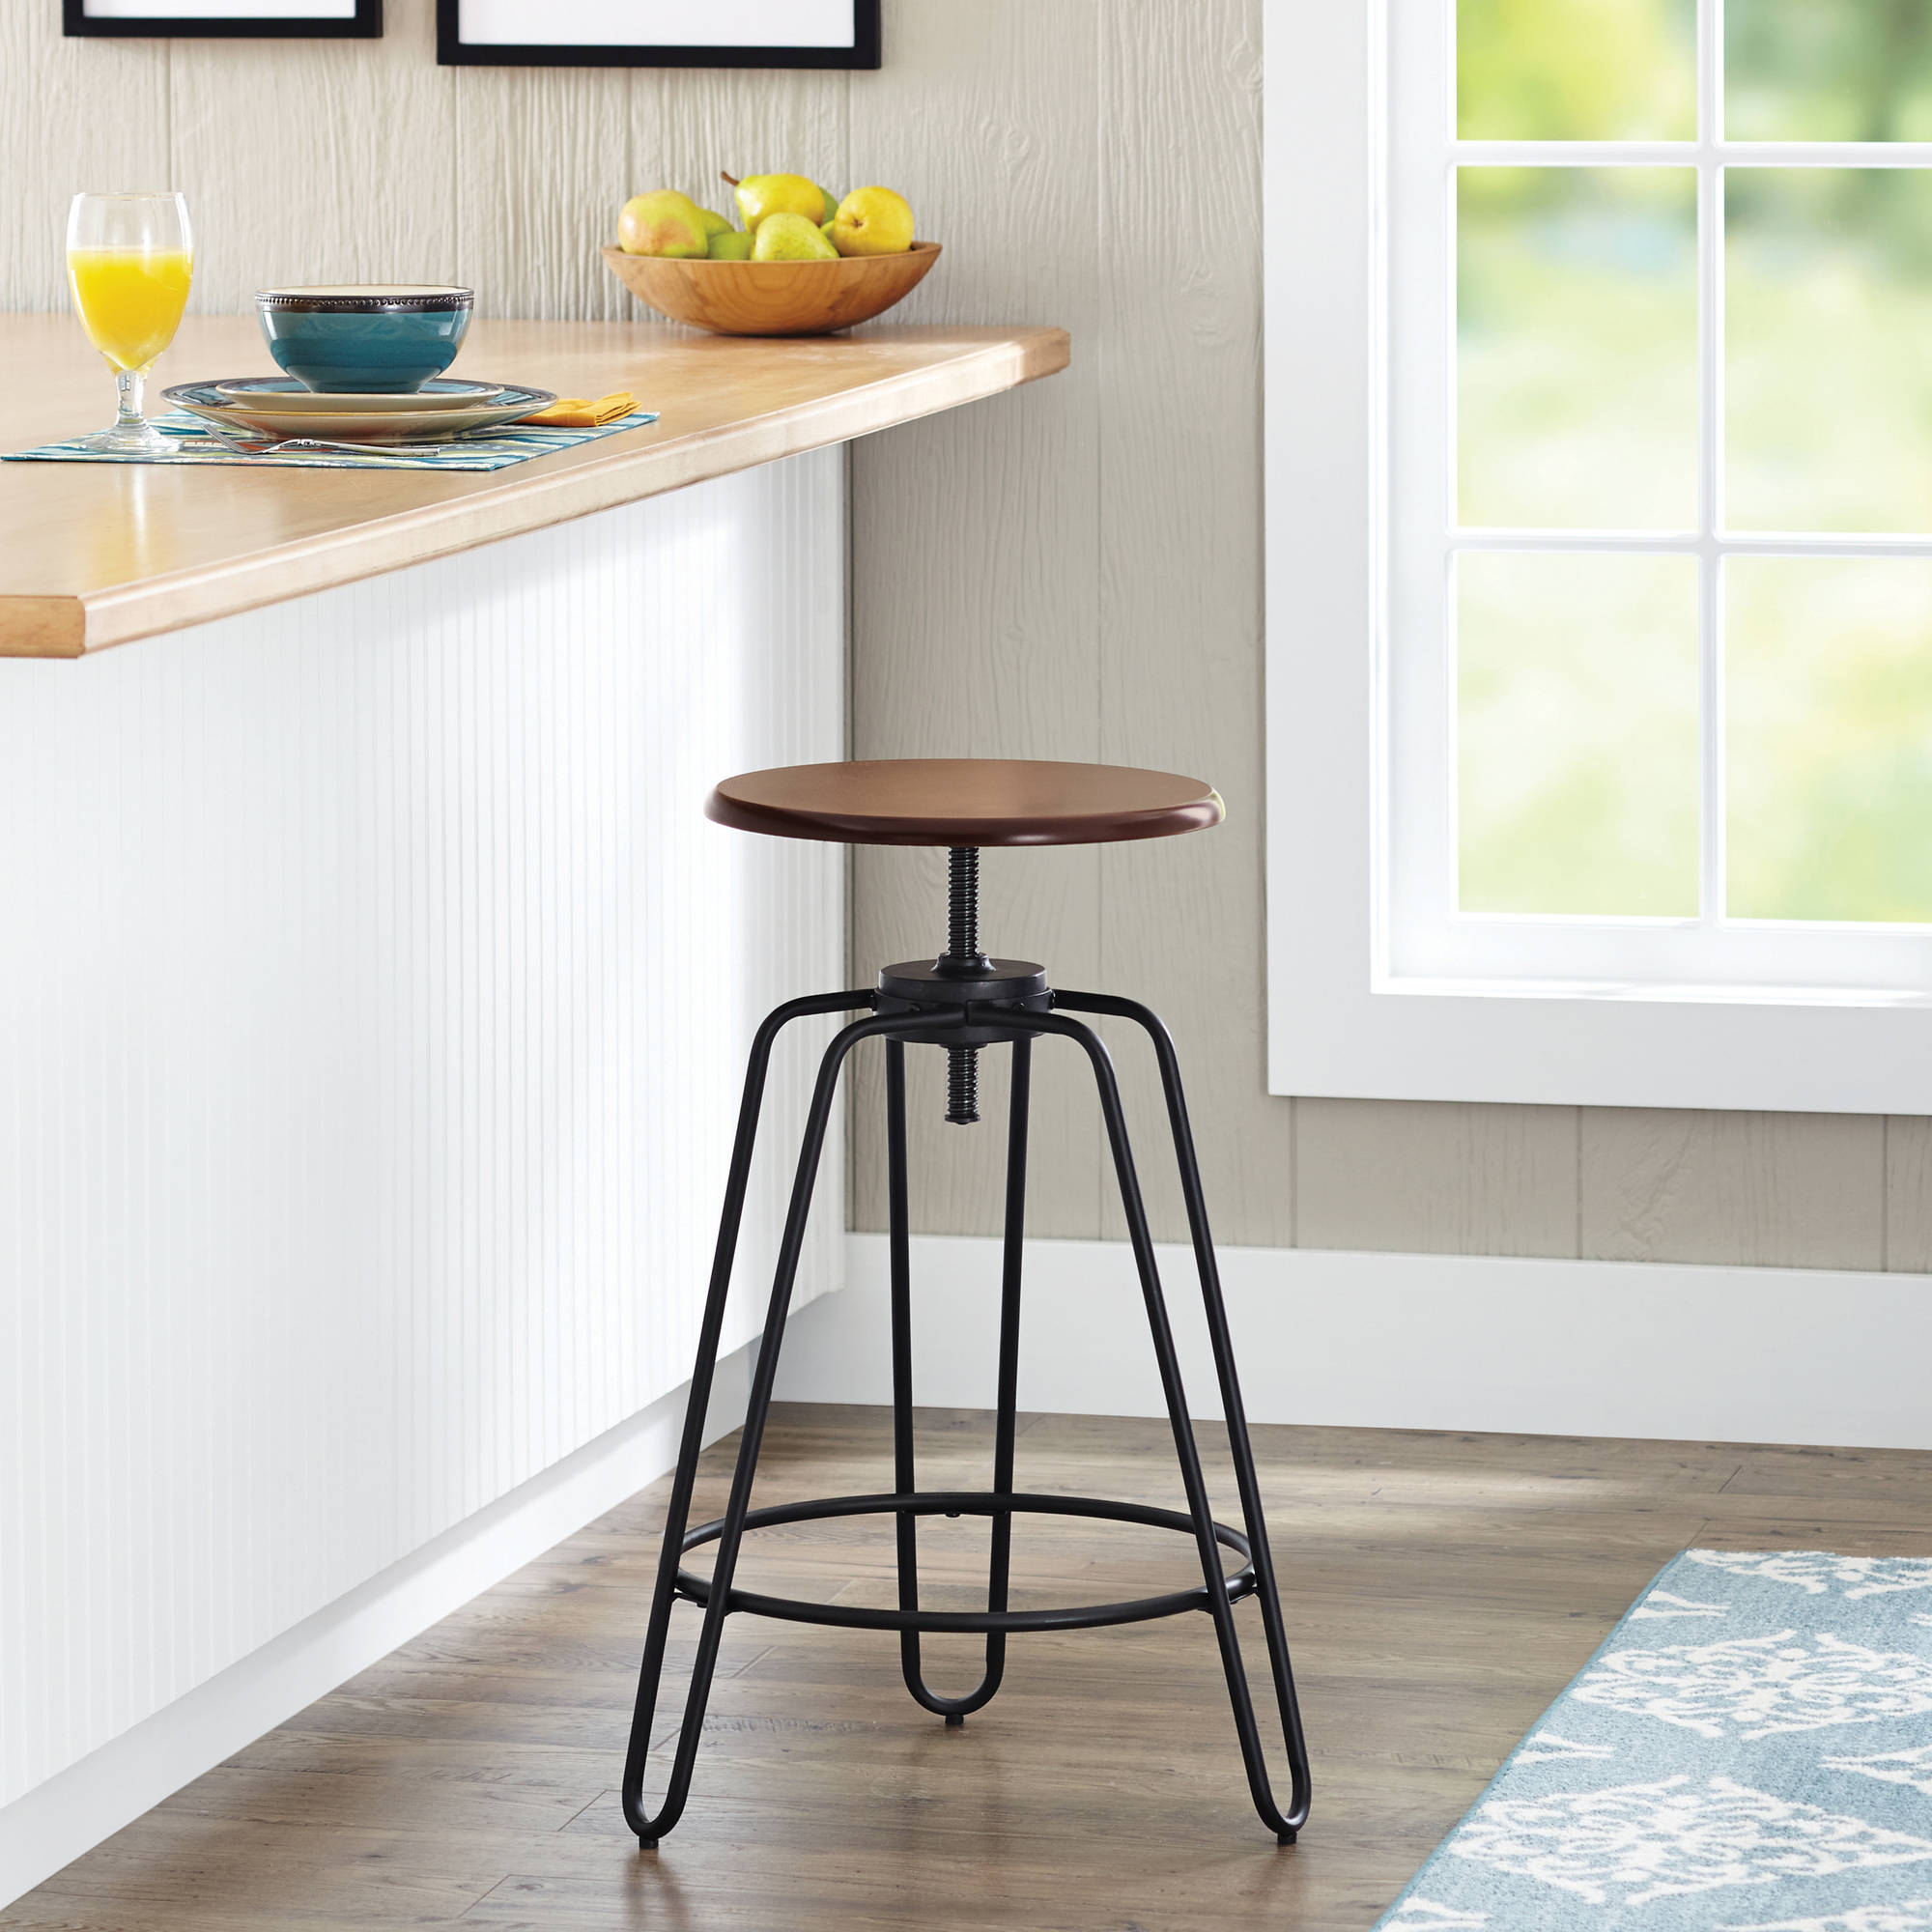 Better Homes and Gardens Adjustable-Height Stool, Multiple Colors